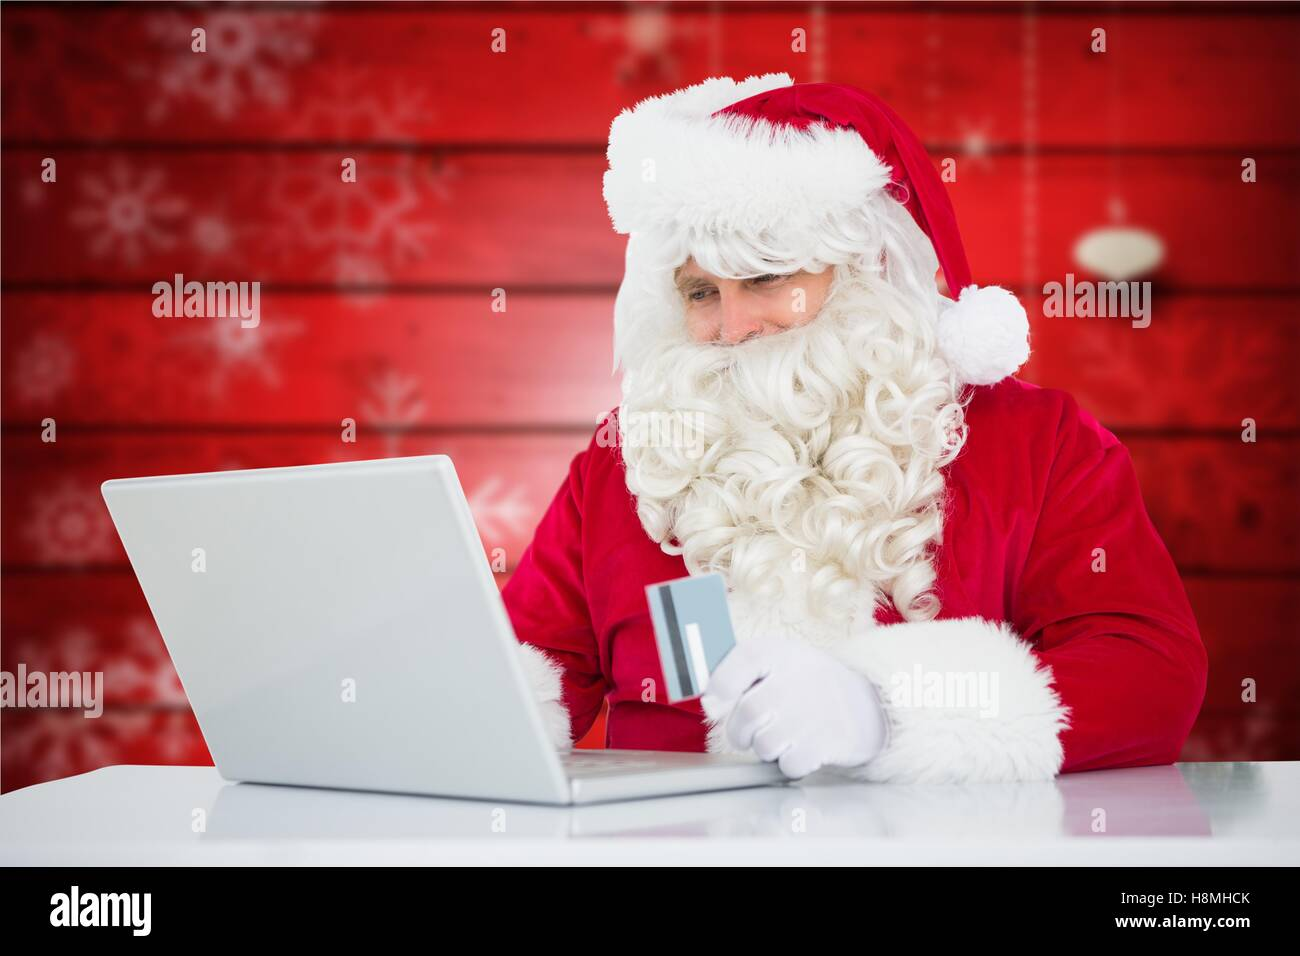 Santa claus doing online shopping with credit card on laptop Stock Photo